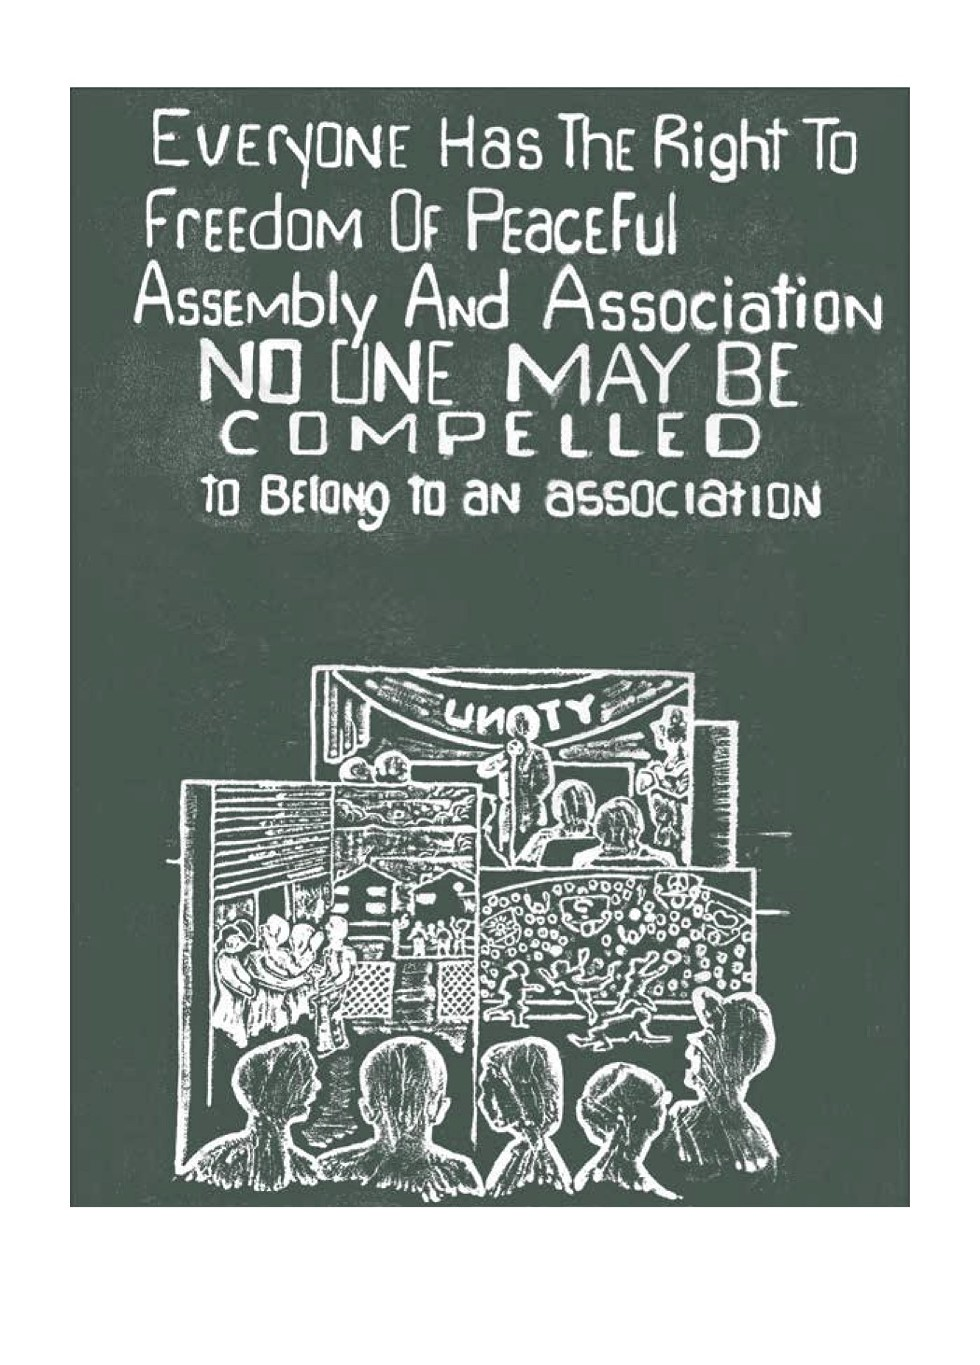 Charles McLaurin's illustration of UDHR Article 20 as seen in Carving Out Rights - CHARLES MCLAURIN/COURTESY HAT & BEARD PRESS